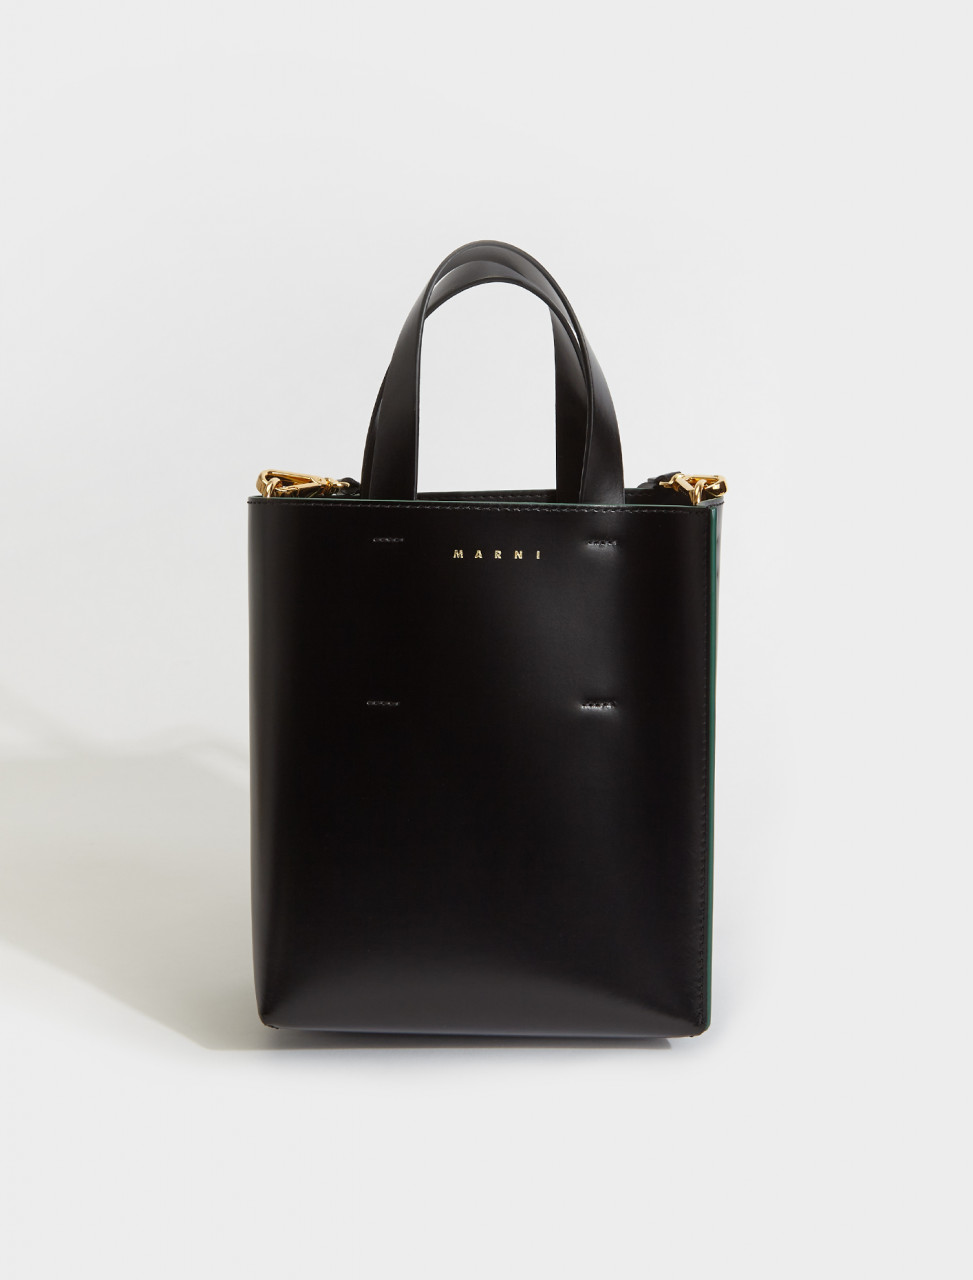 SHMP0039Y0-Z1N99 MARNI SHOPPING BAG BLACK